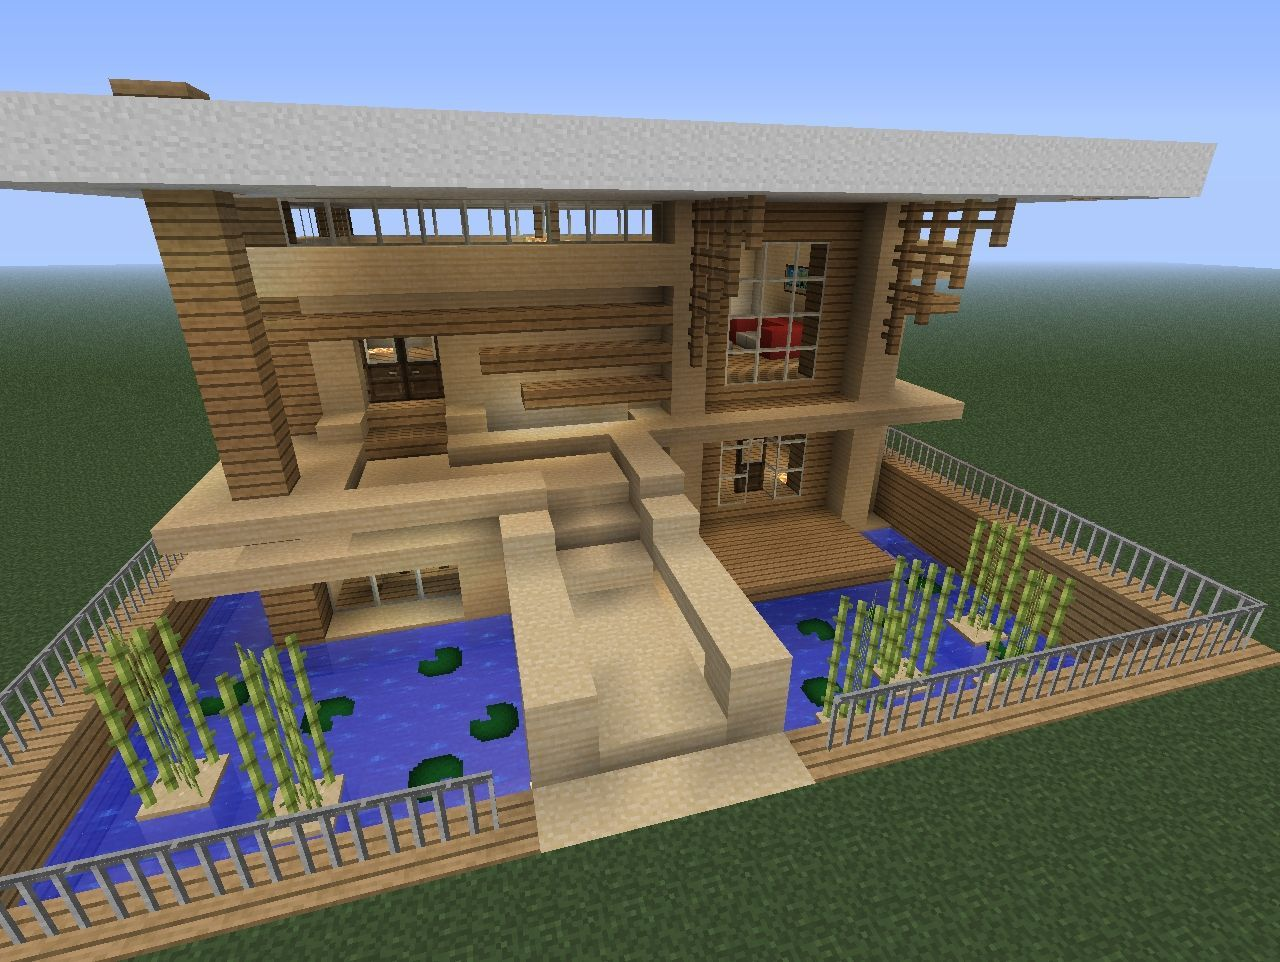 best 25 minecraft houses ideas that you will like on pinterest minecraft minecraft amazing builds and minecraft ideas - Minecraft Home Designs